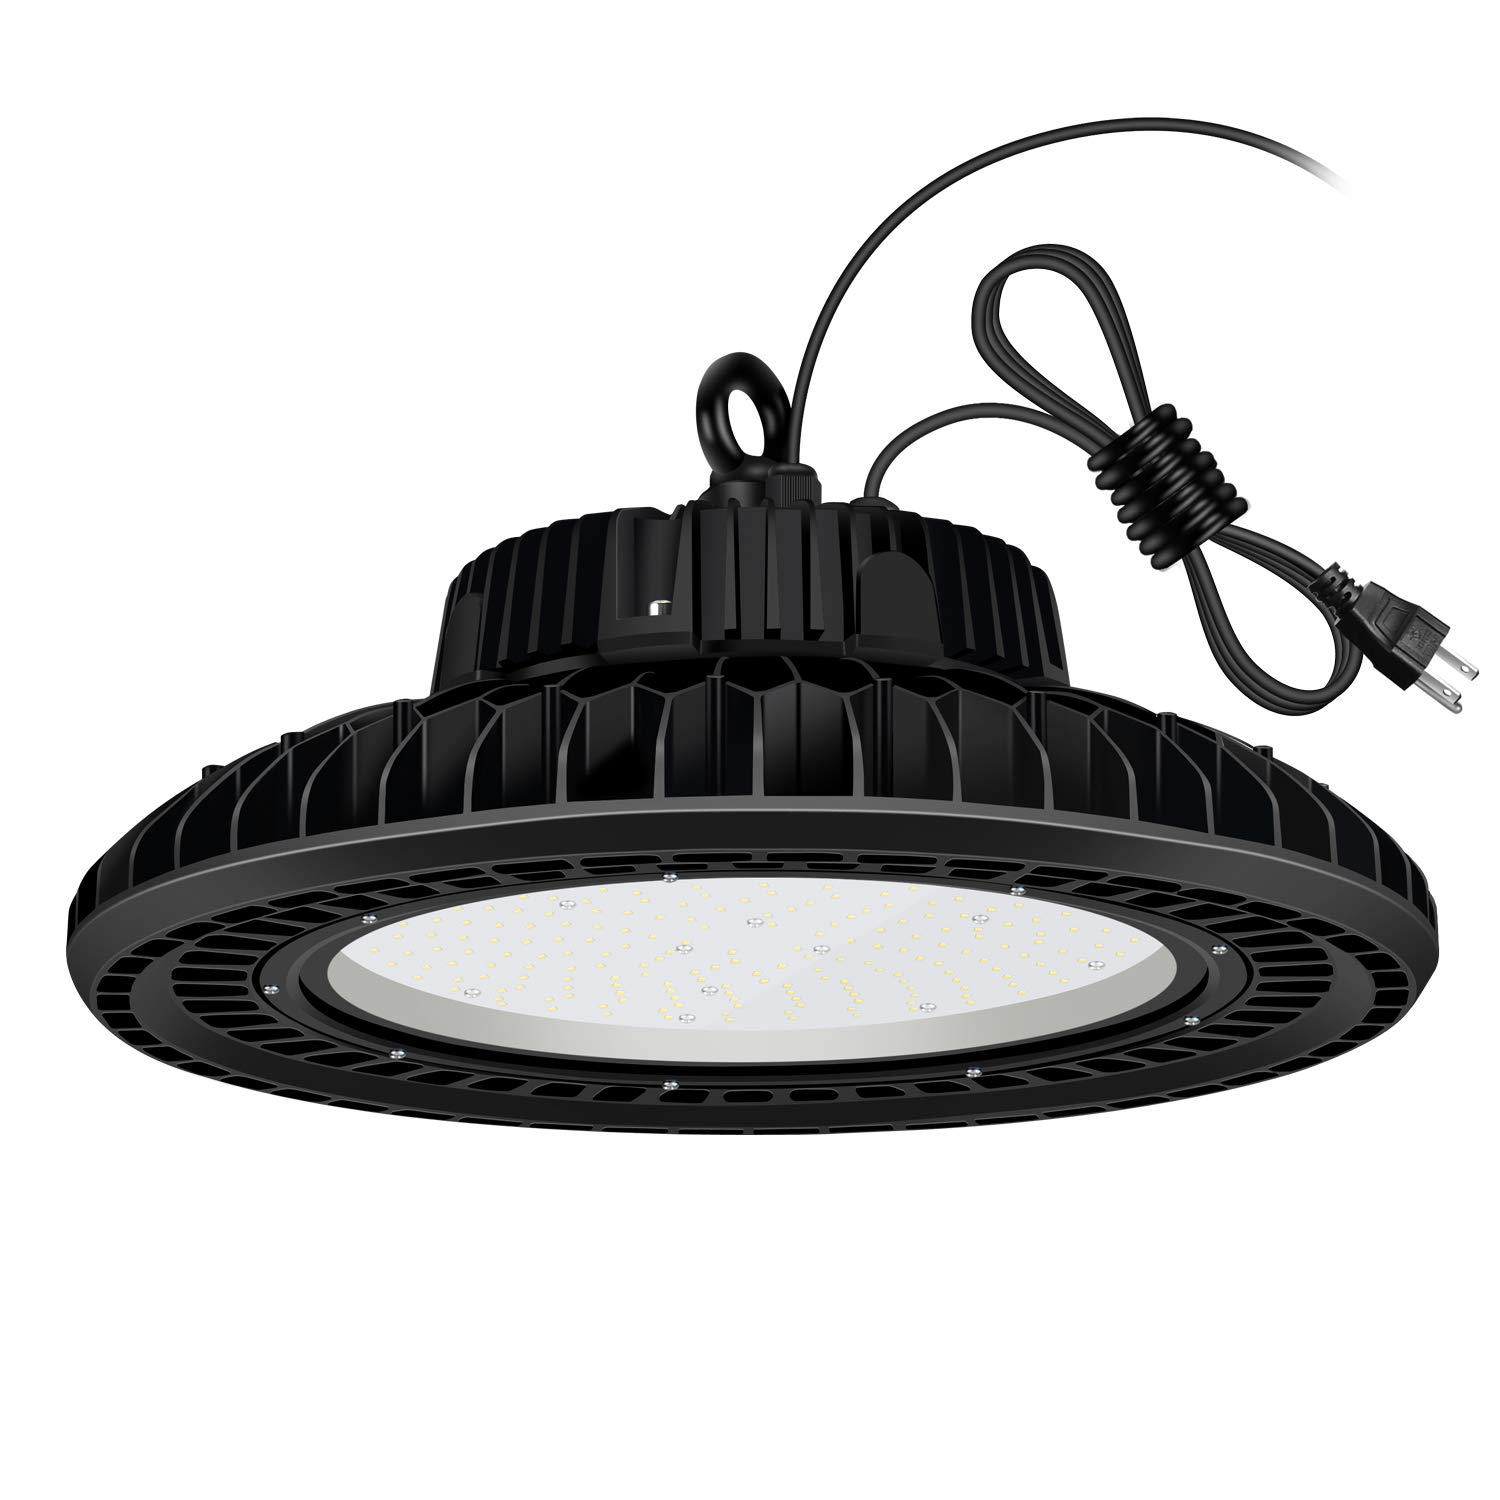 AntLux UFO LED High Bay Light - 200W (800W HID/HPS Replacement), 24000LM, 5000K, Dimmable (Optional), IP65 Waterproof, US Plug, Warehouse Lights, Industrial Workshop High Bay LED Lighting Fixtures